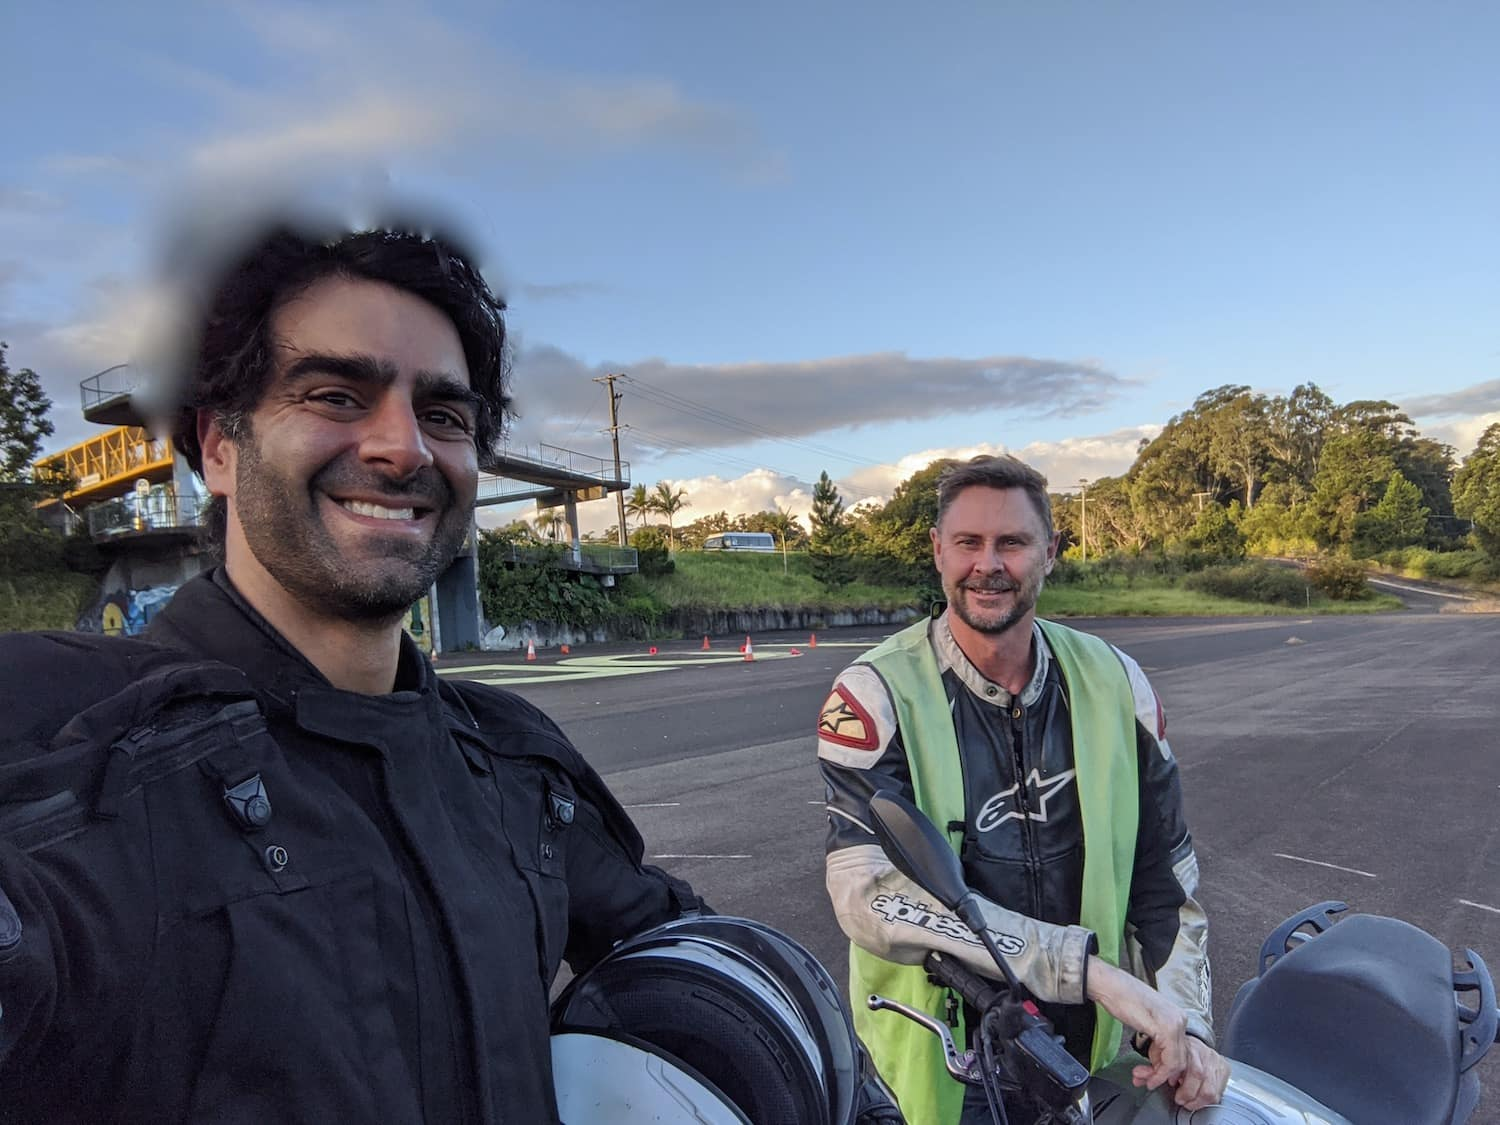 Queensland Motorcycle School - Me and trainer Mark on the Honda CB600 Hornet